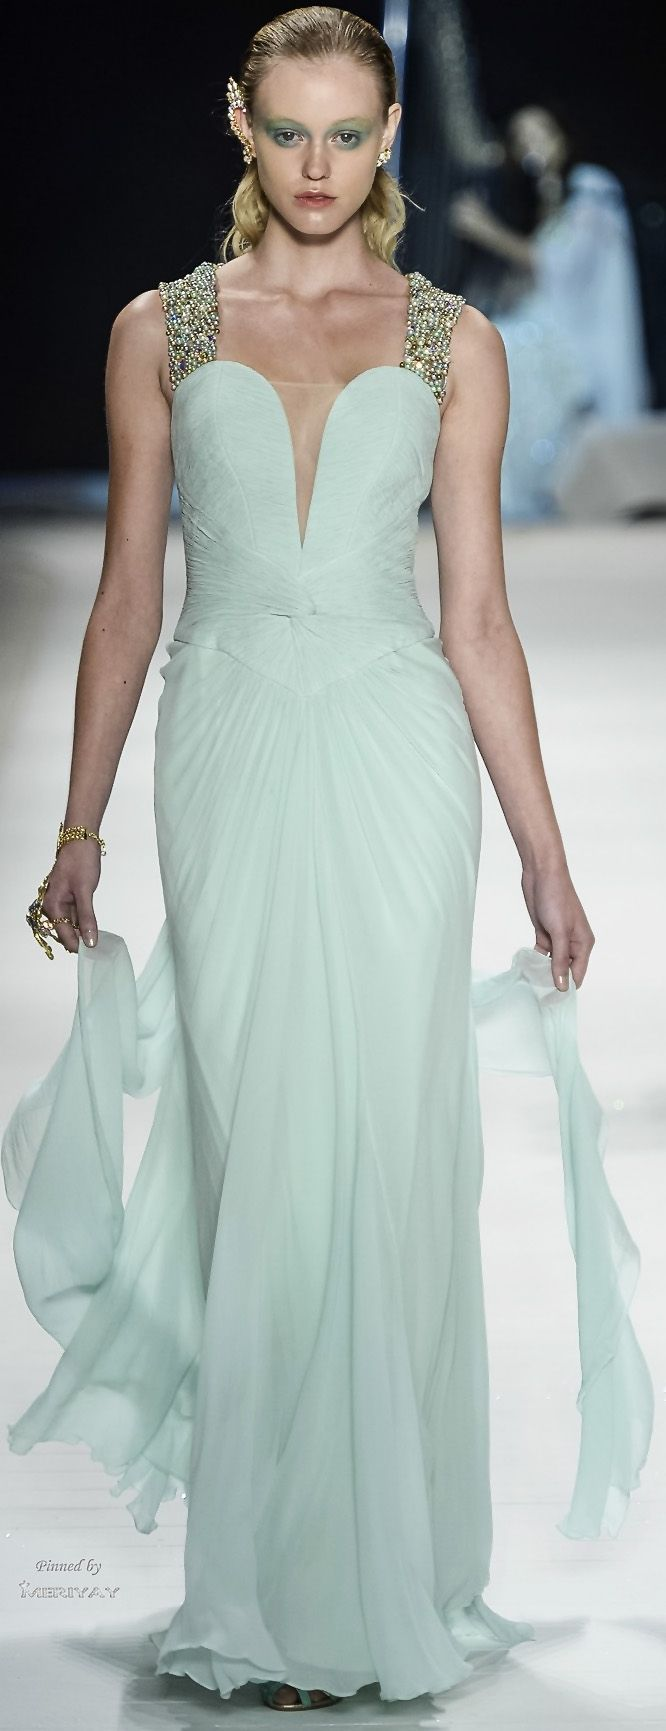 525 best Vestidos longos images on Pinterest | Party fashion, Party ...